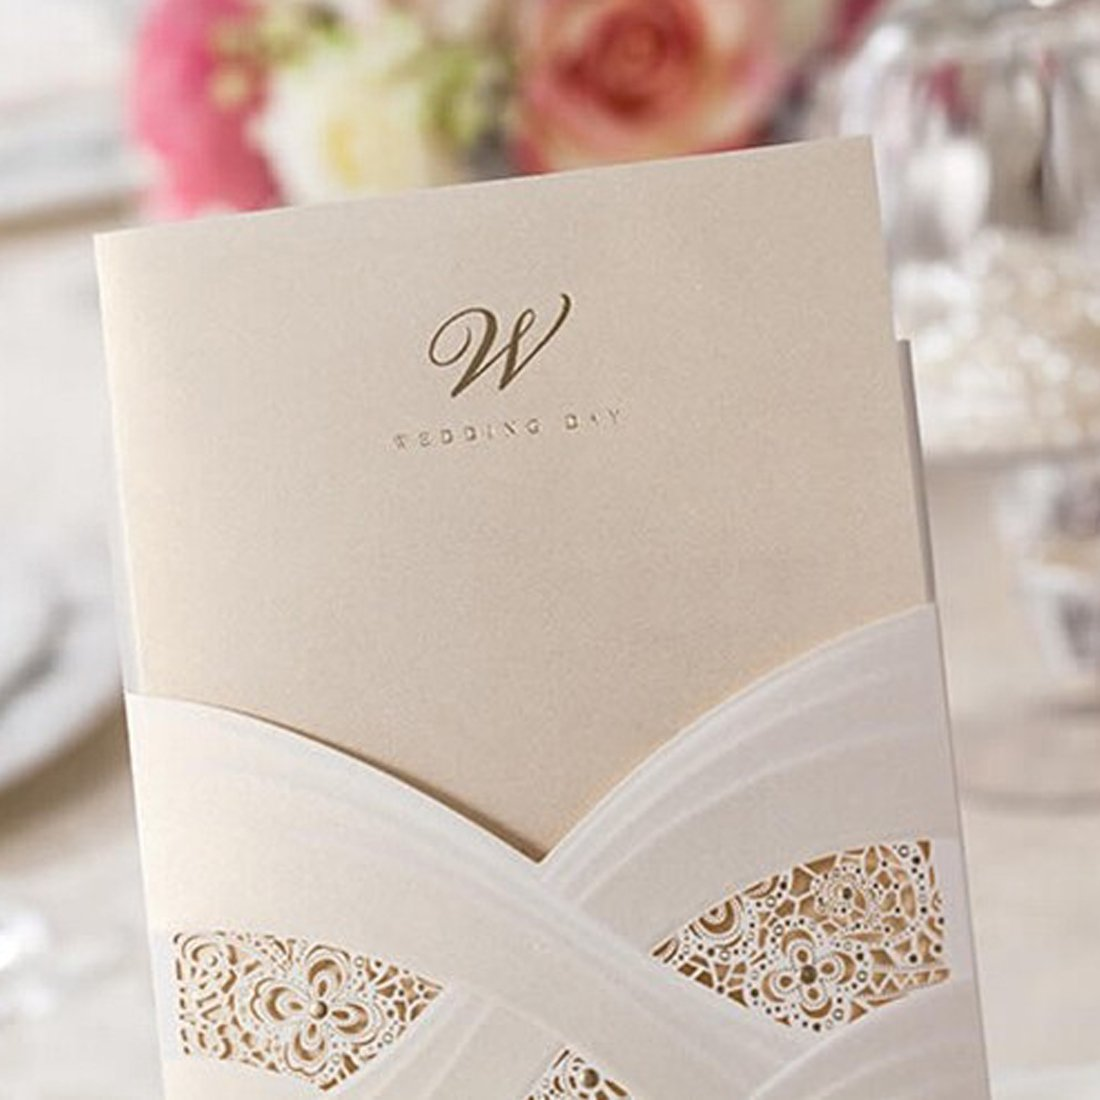 WISHMADE 20X Vertical Ivory Laser Cut Wedding Invitations Hollow Lace Flora Paper Cards for Bridal Shower Set of 20pcs